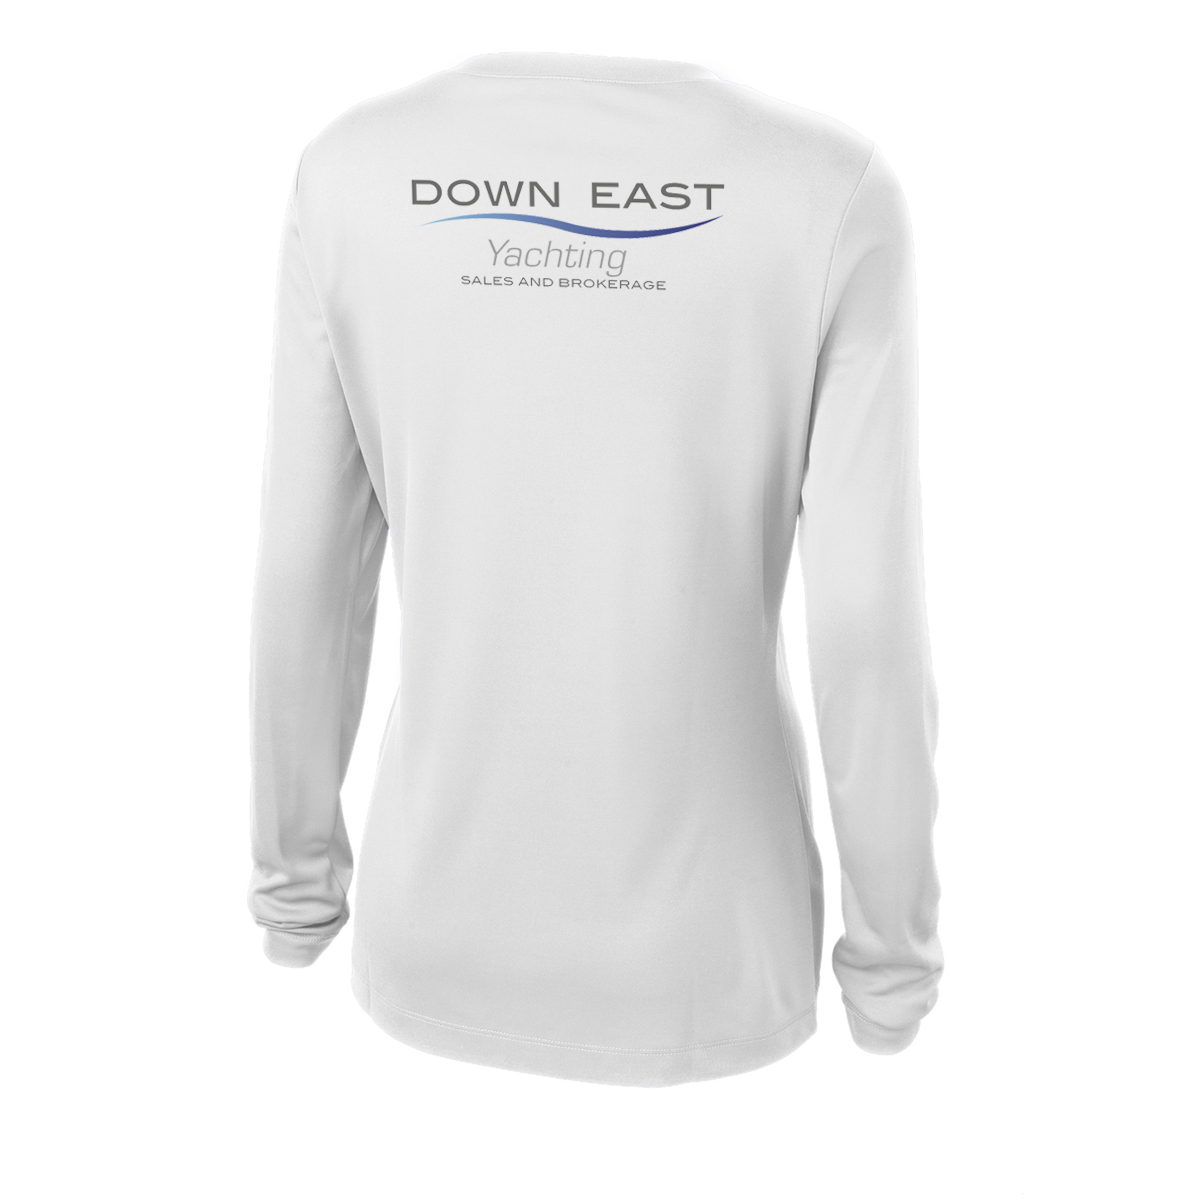 DOWN EAST YACHTING - W'S L/S TECH TEE